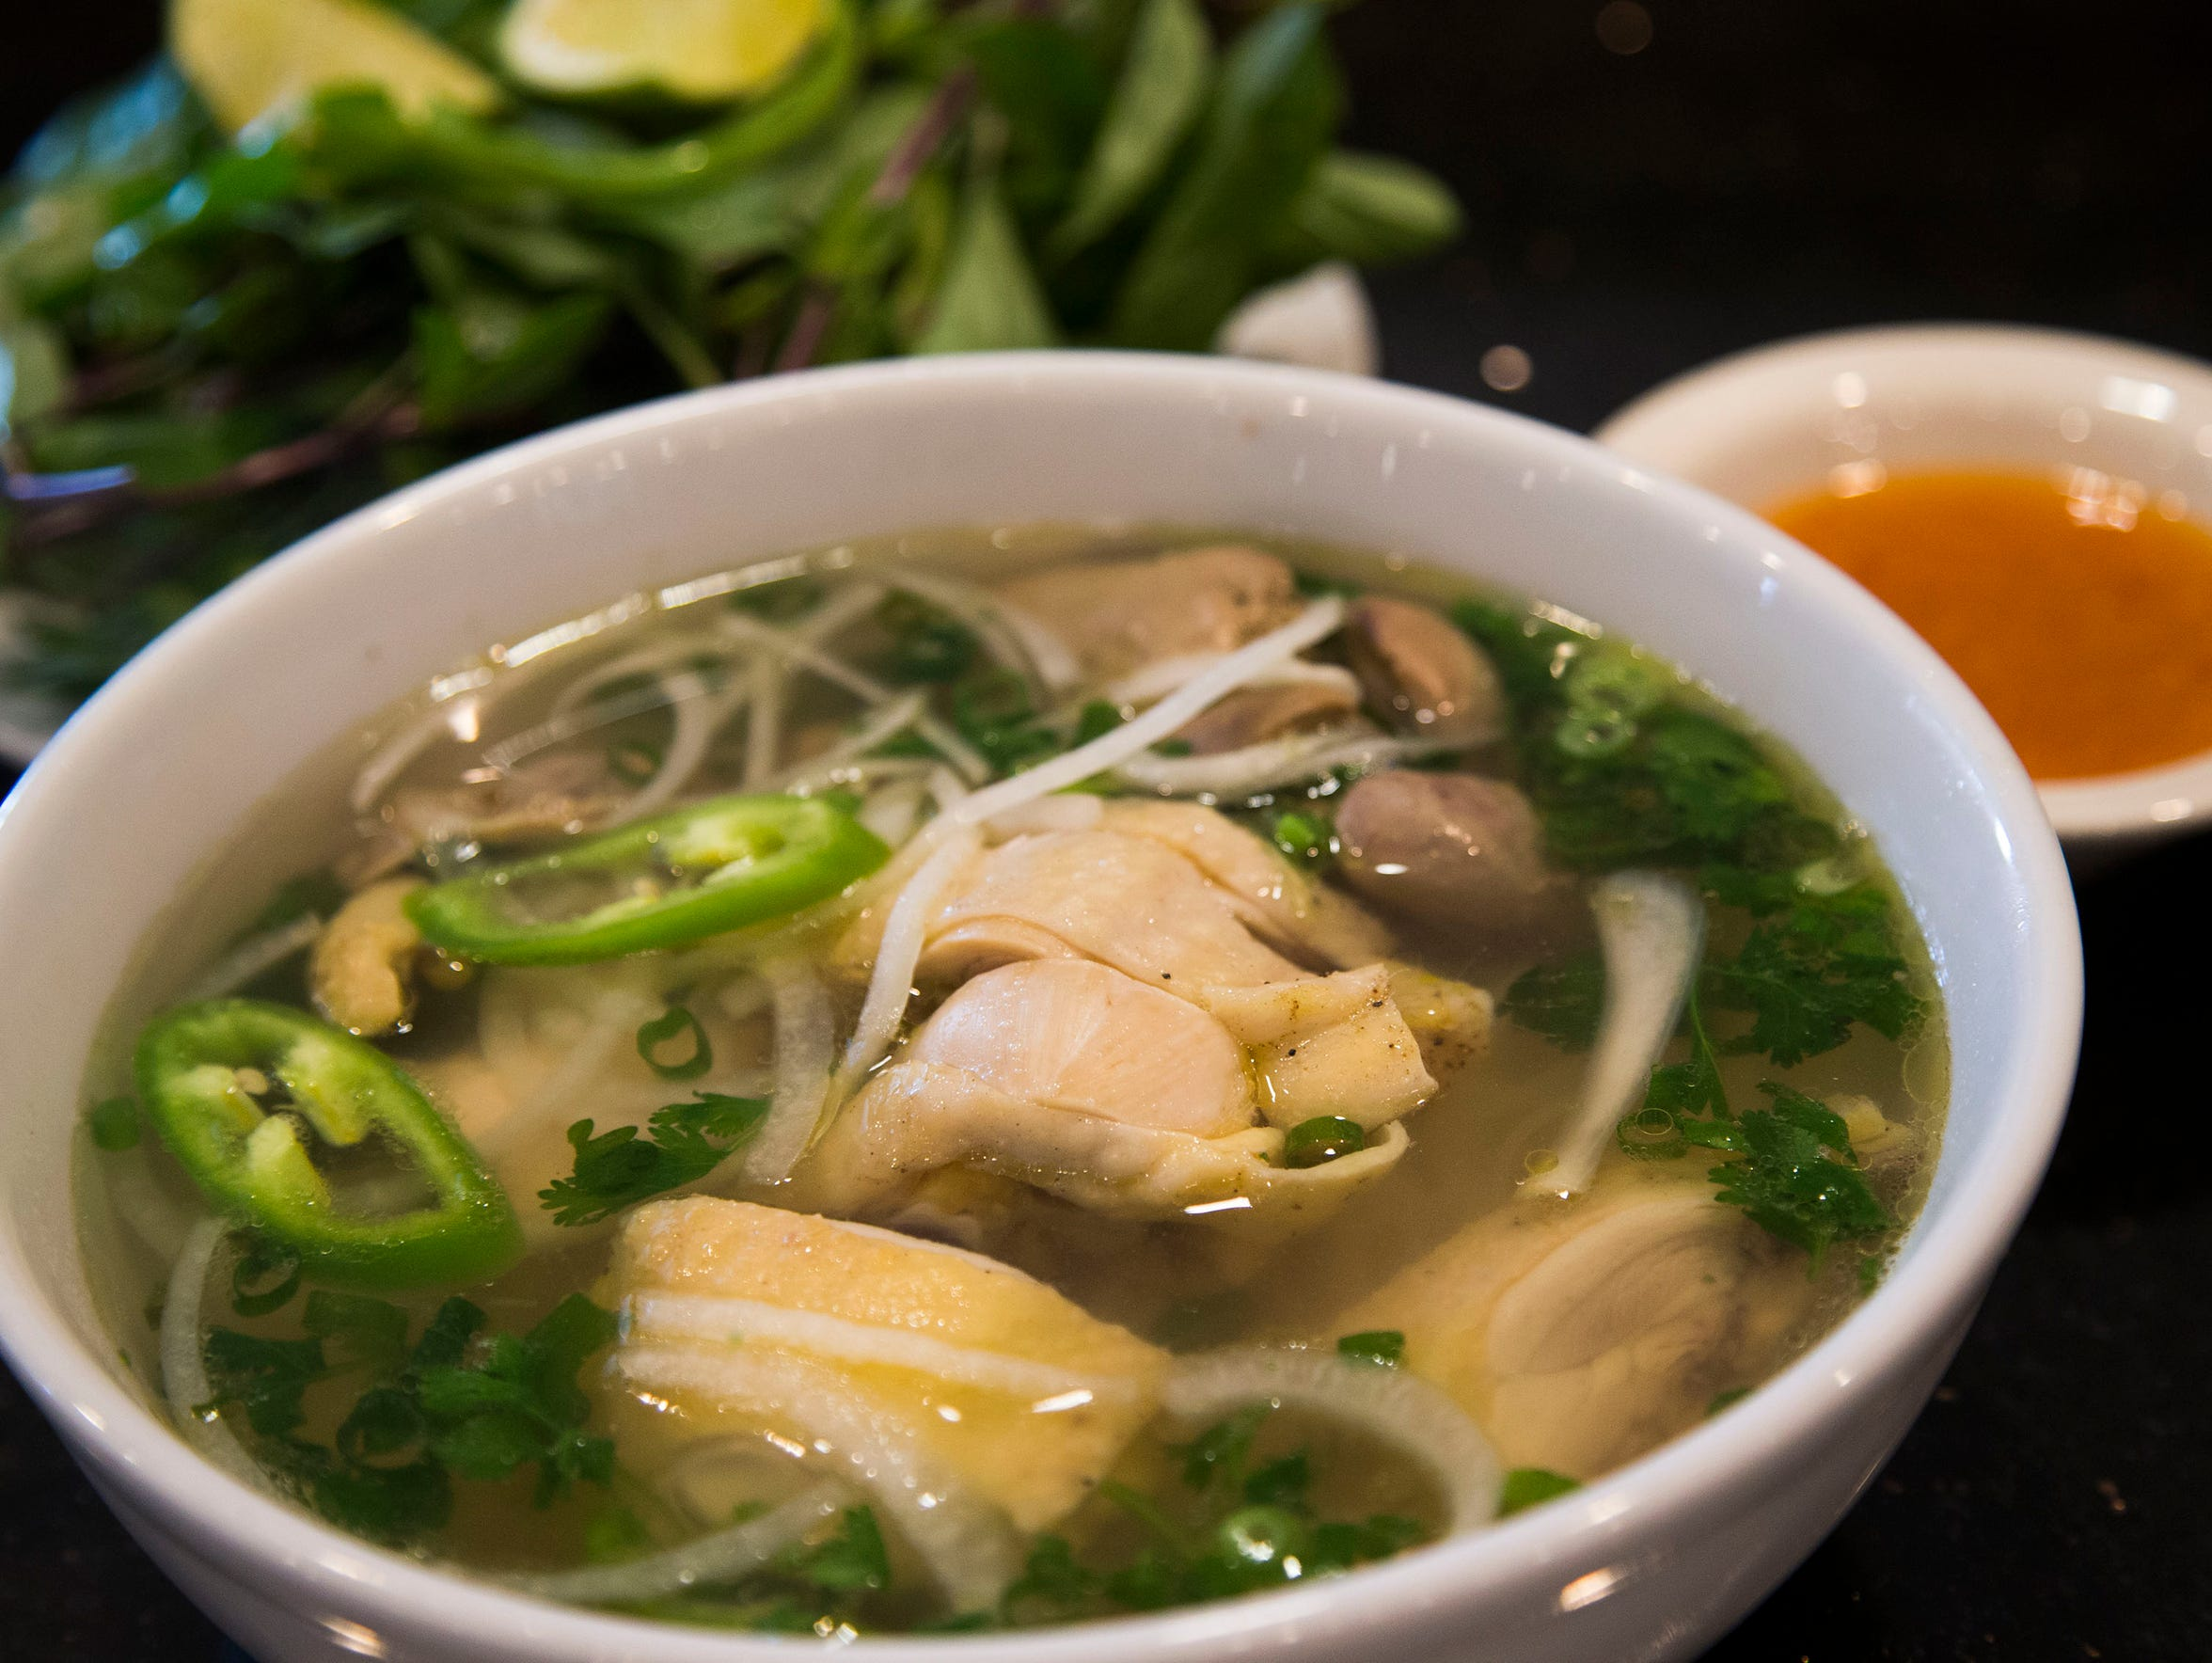 Chicken pho from Pho Winglee in Mesa.